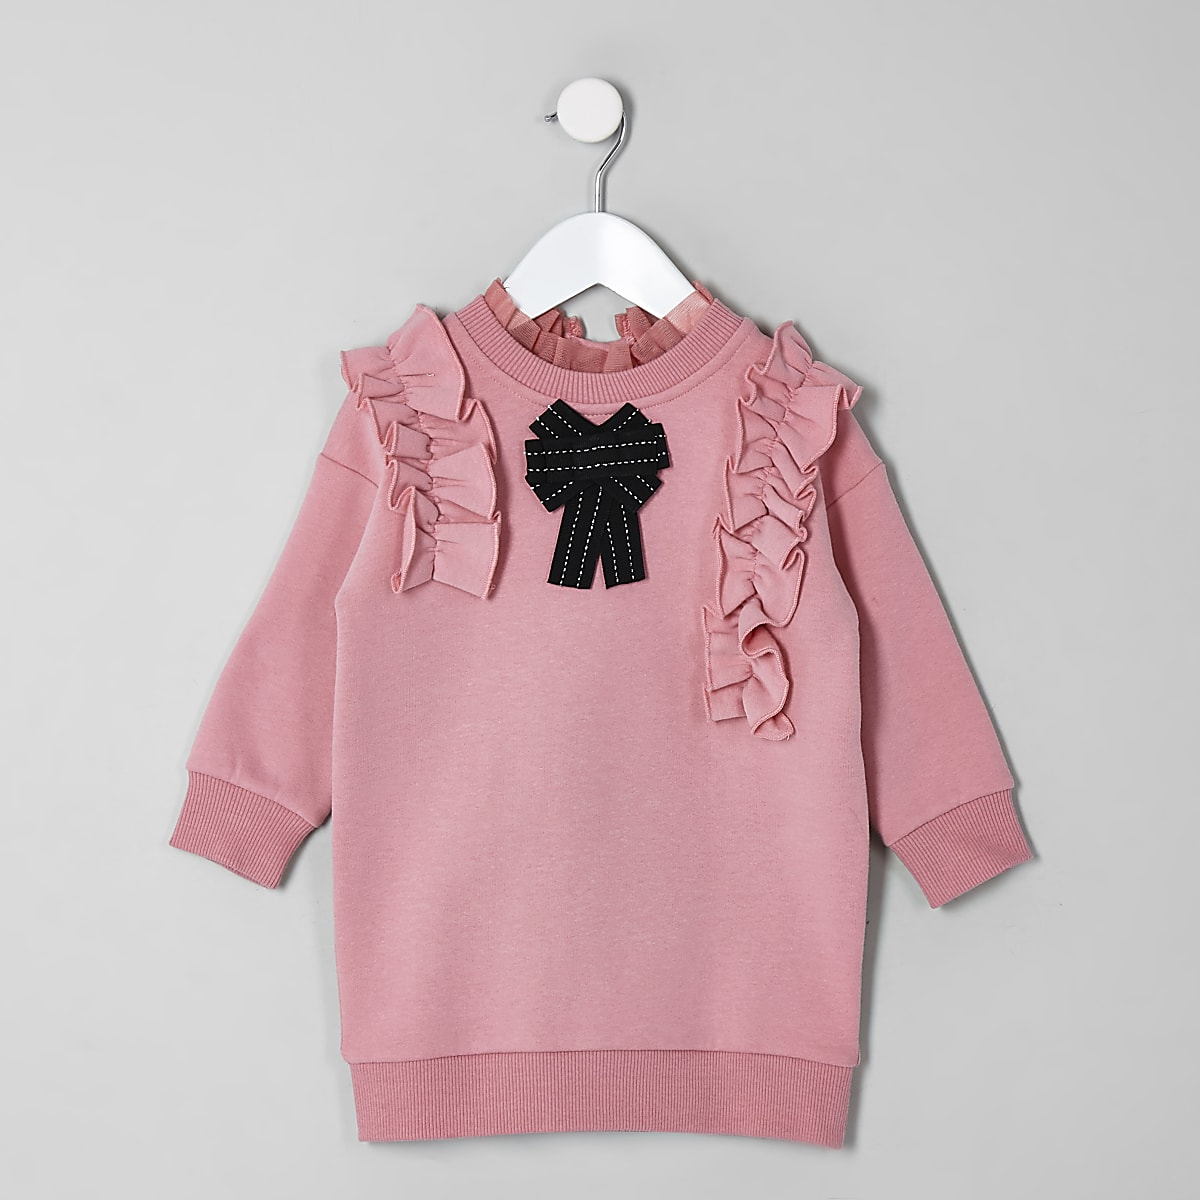 Mini girls pink bow jumper dress